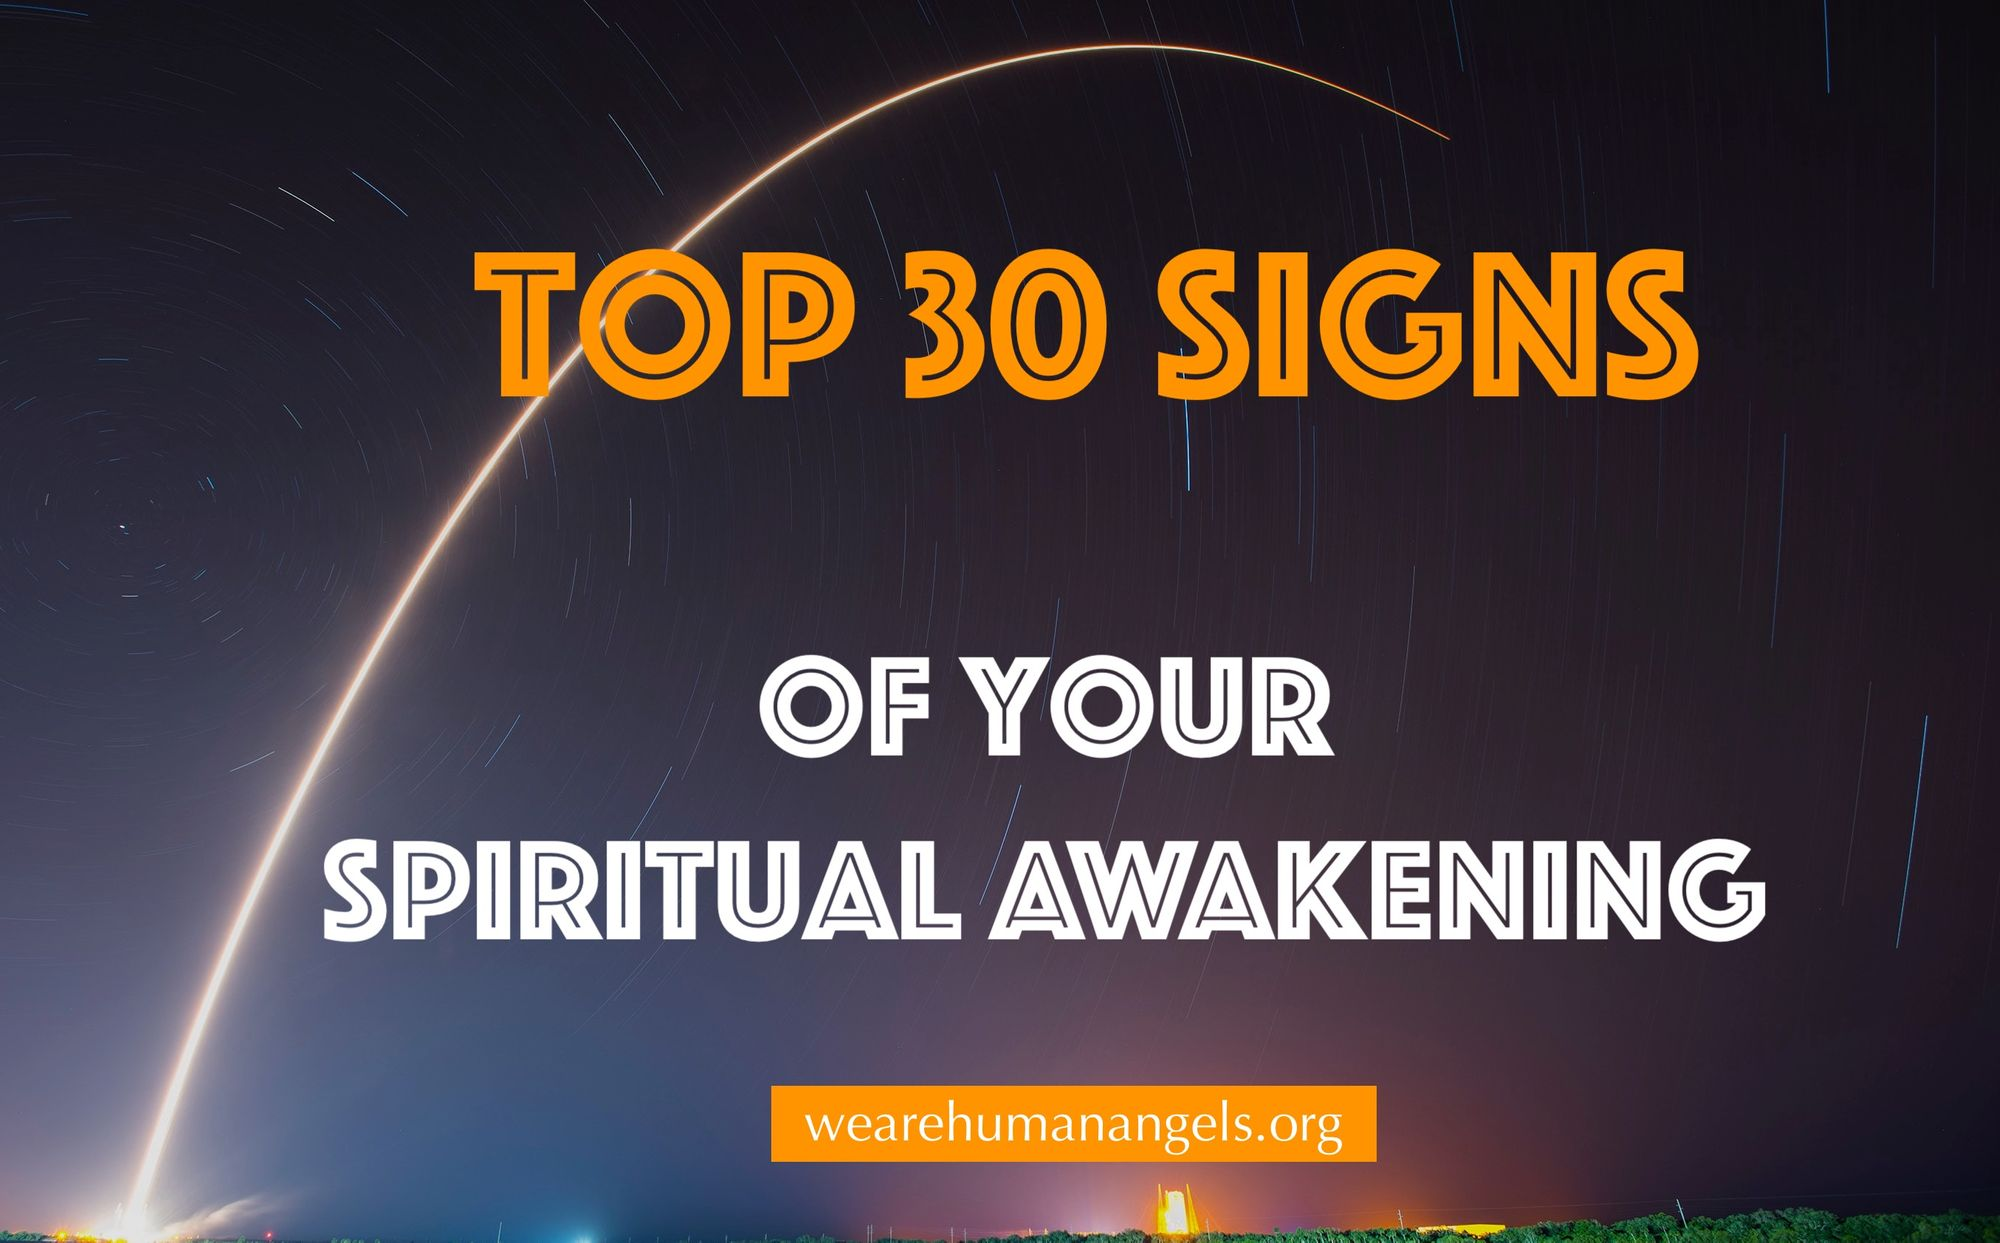 Top 30 Spiritual Awakening Signs: How Many do You Have?